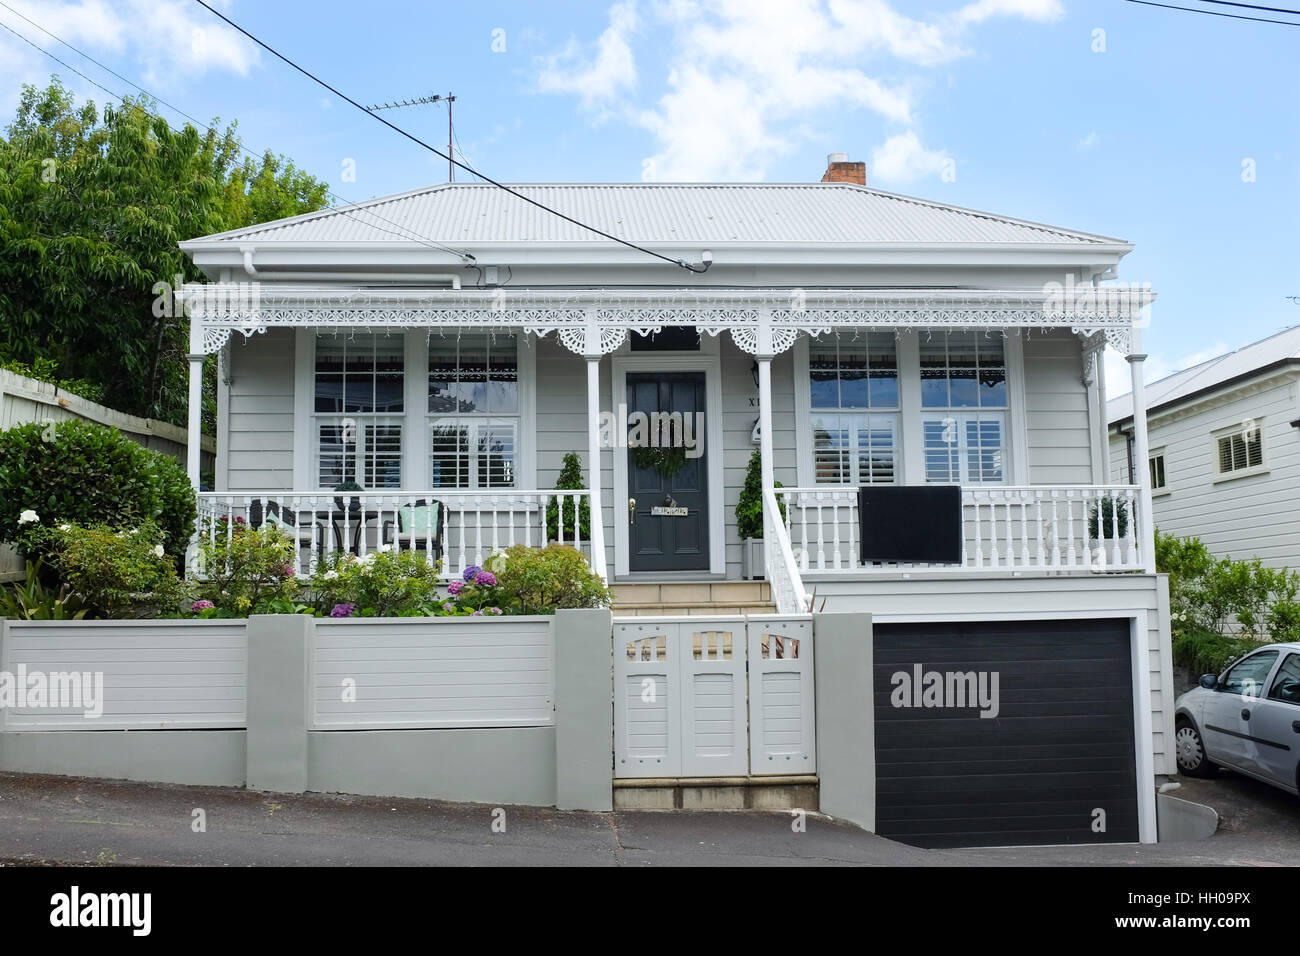 A small house in Devonport, a suburb of Auckland, New Zealand. Stock Photo